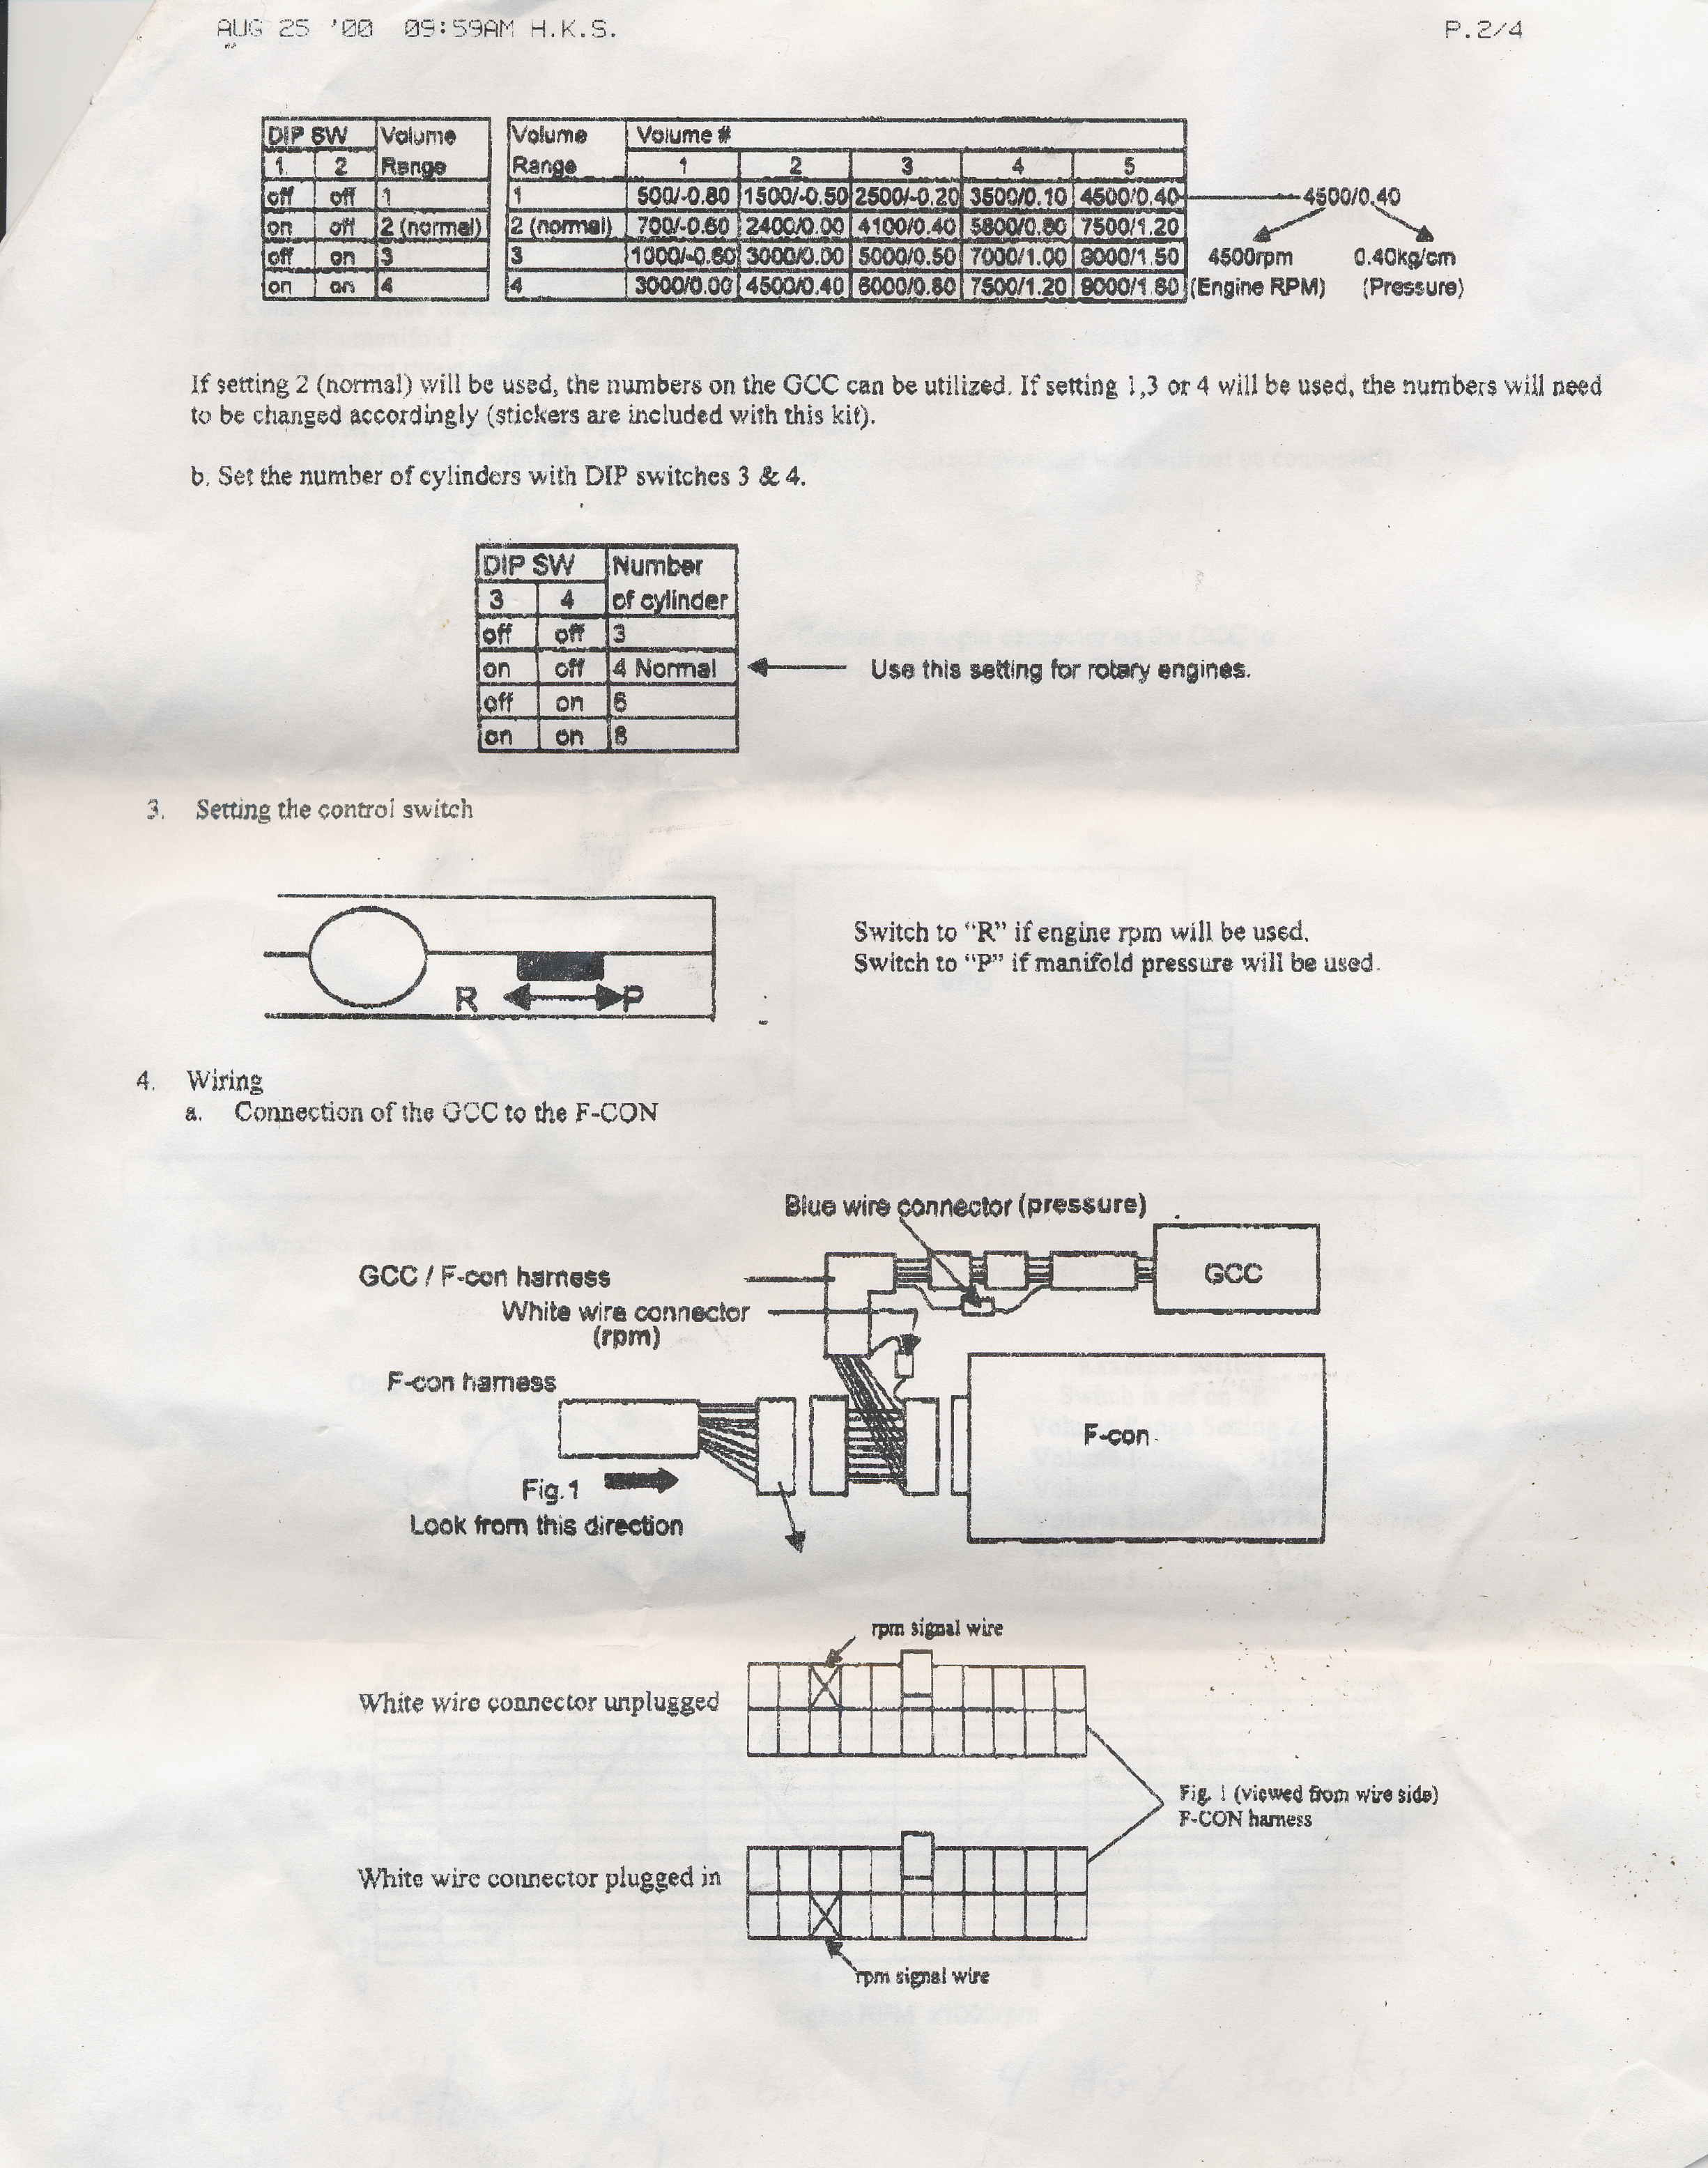 hks gcc manual 02 hks gcc graphical control computer hks fcd wiring diagram at aneh.co